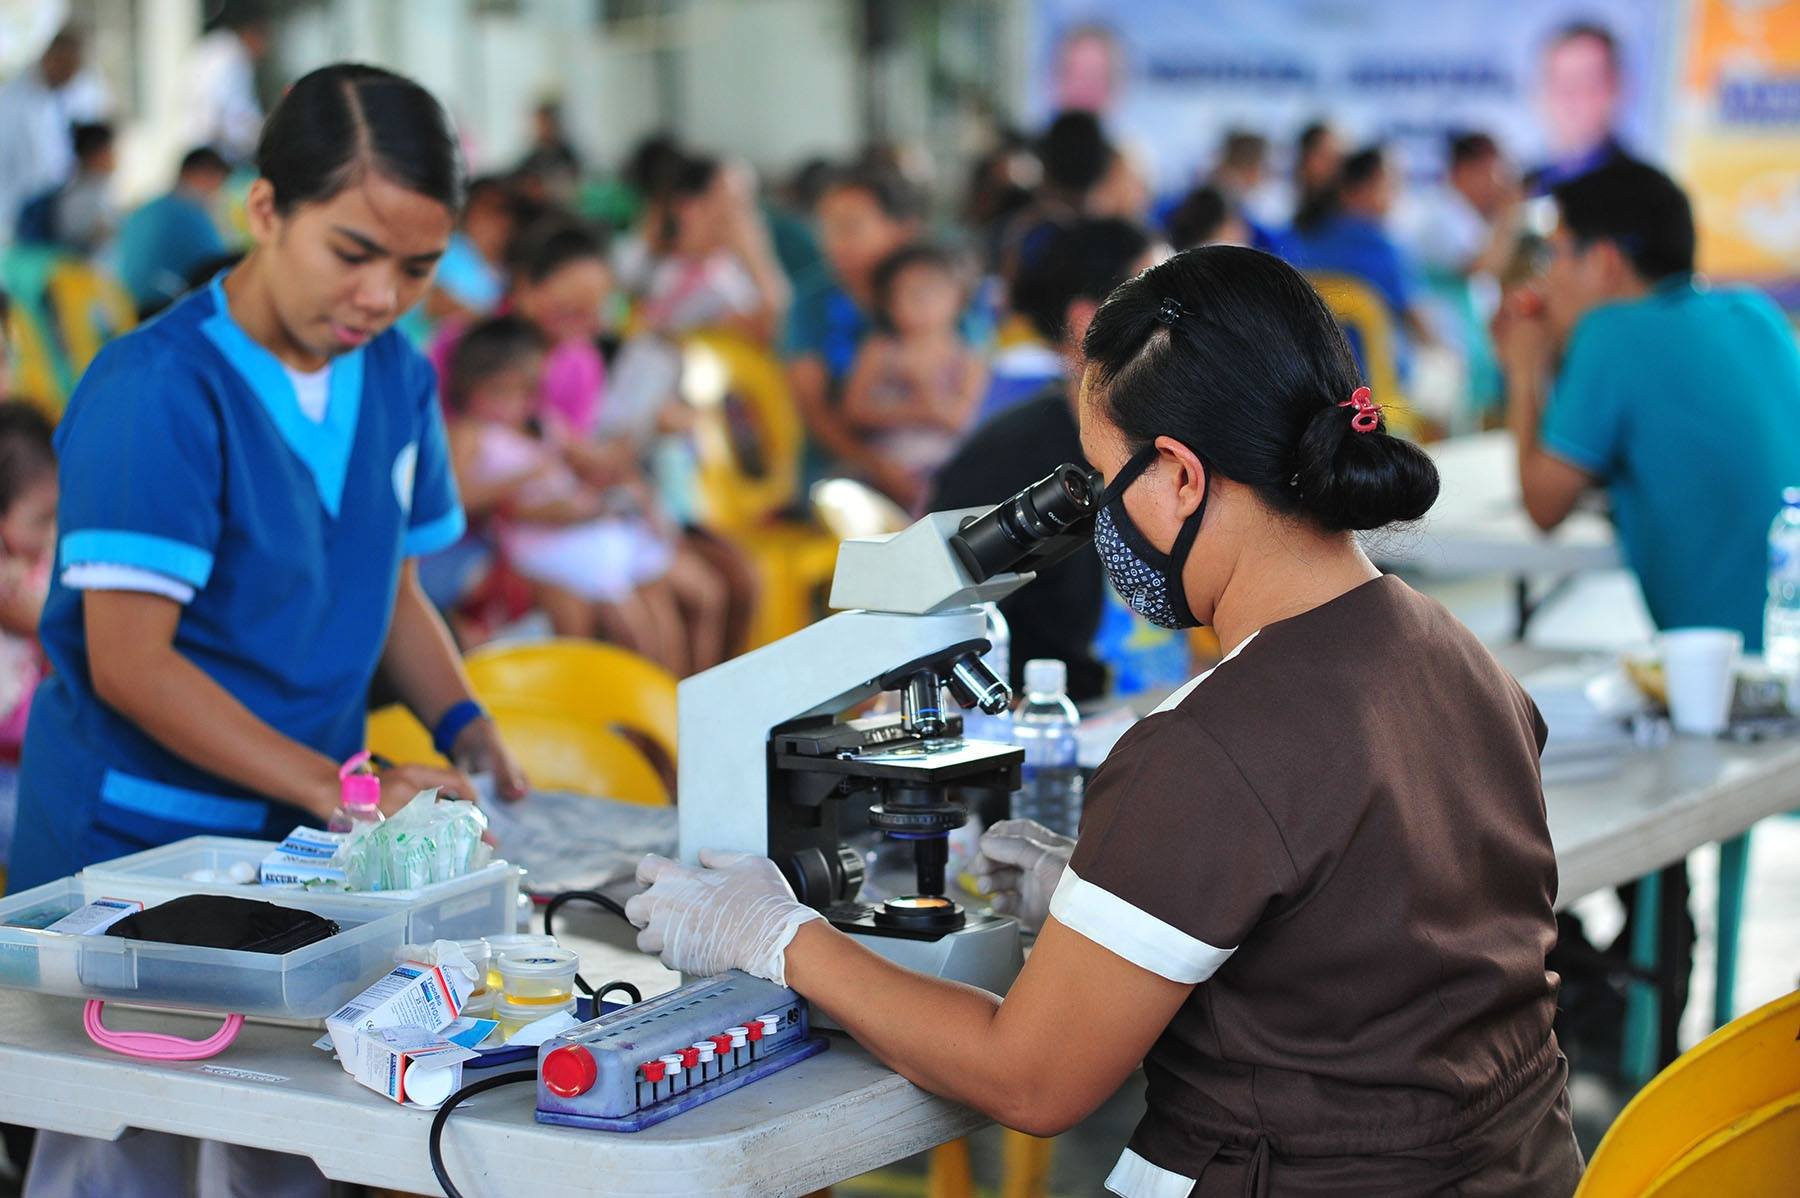 From Provincial Villages to a City Jail: MCGI and Serbisyong Kasangbahay Serve 2,200 Indigents in August